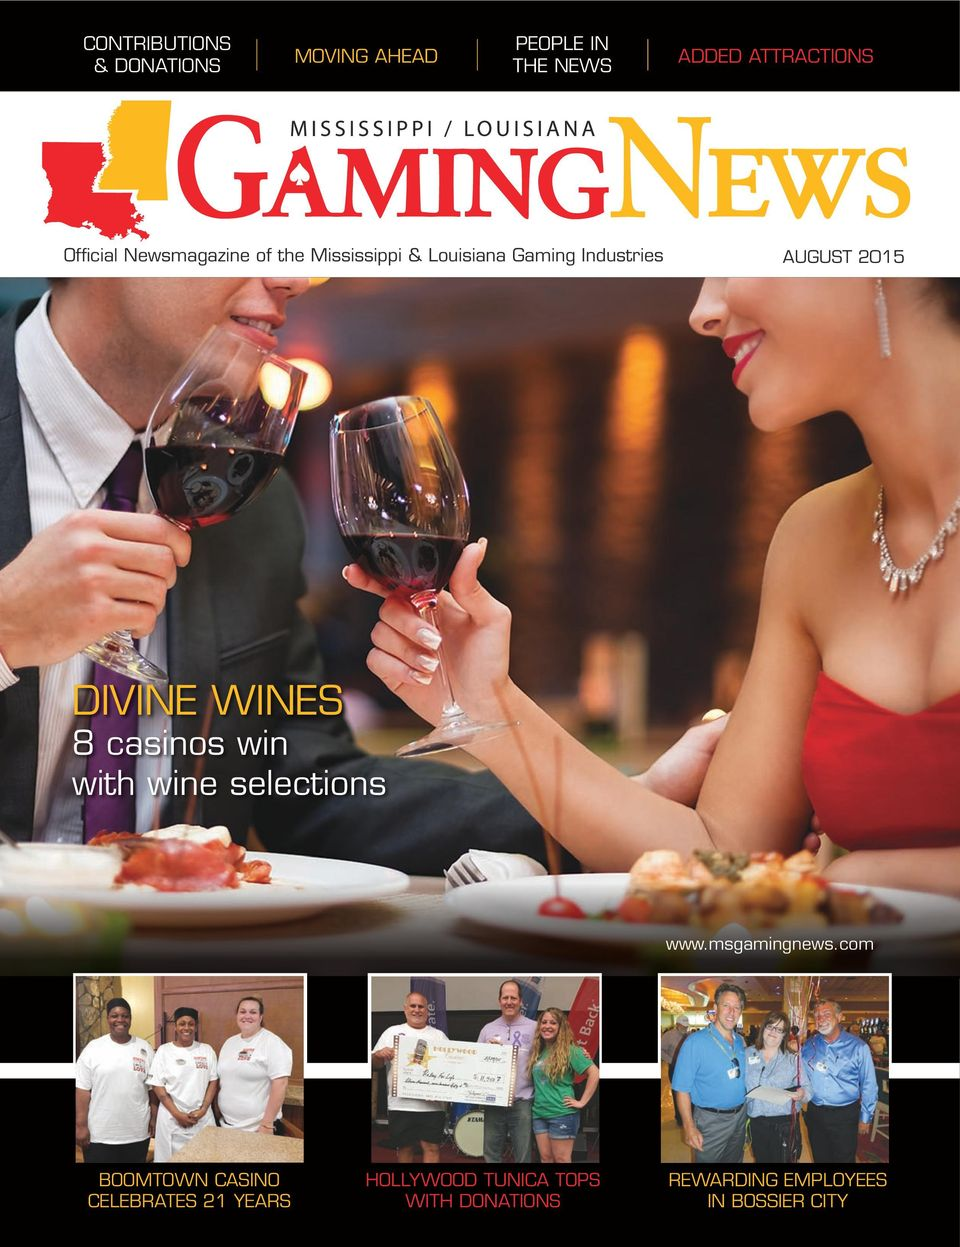 DIVINE WINES 8 casinos win with wine selections www.msgamingnews.